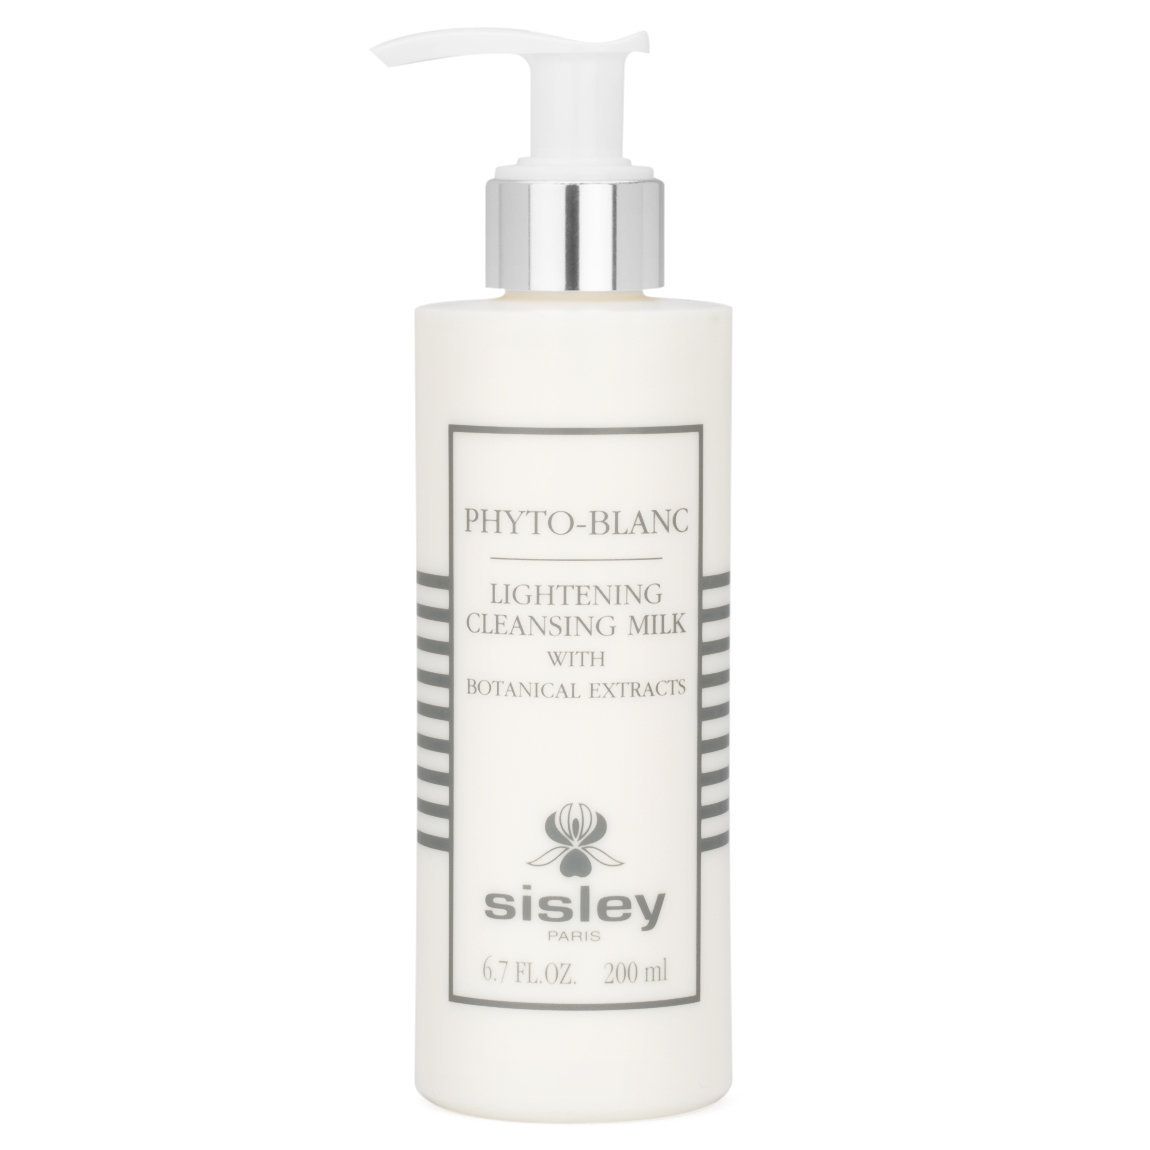 Sisley-Paris Phyto-Blanc Lightening Cleansing Milk alternative view 1 - product swatch.